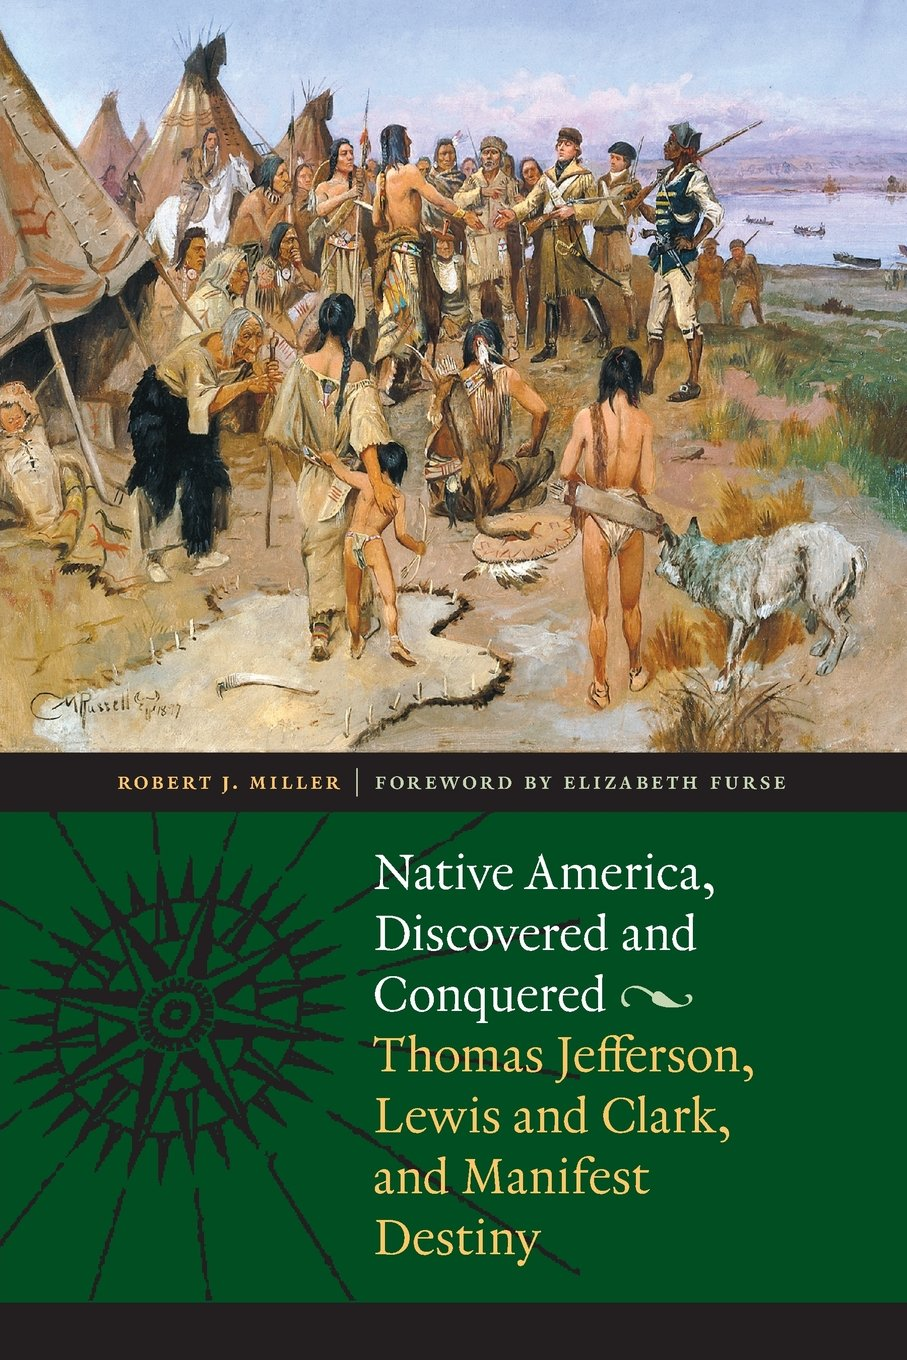 Download Native America, Discovered and Conquered: Thomas Jefferson, Lewis and Clark, and Manifest Destiny PDF